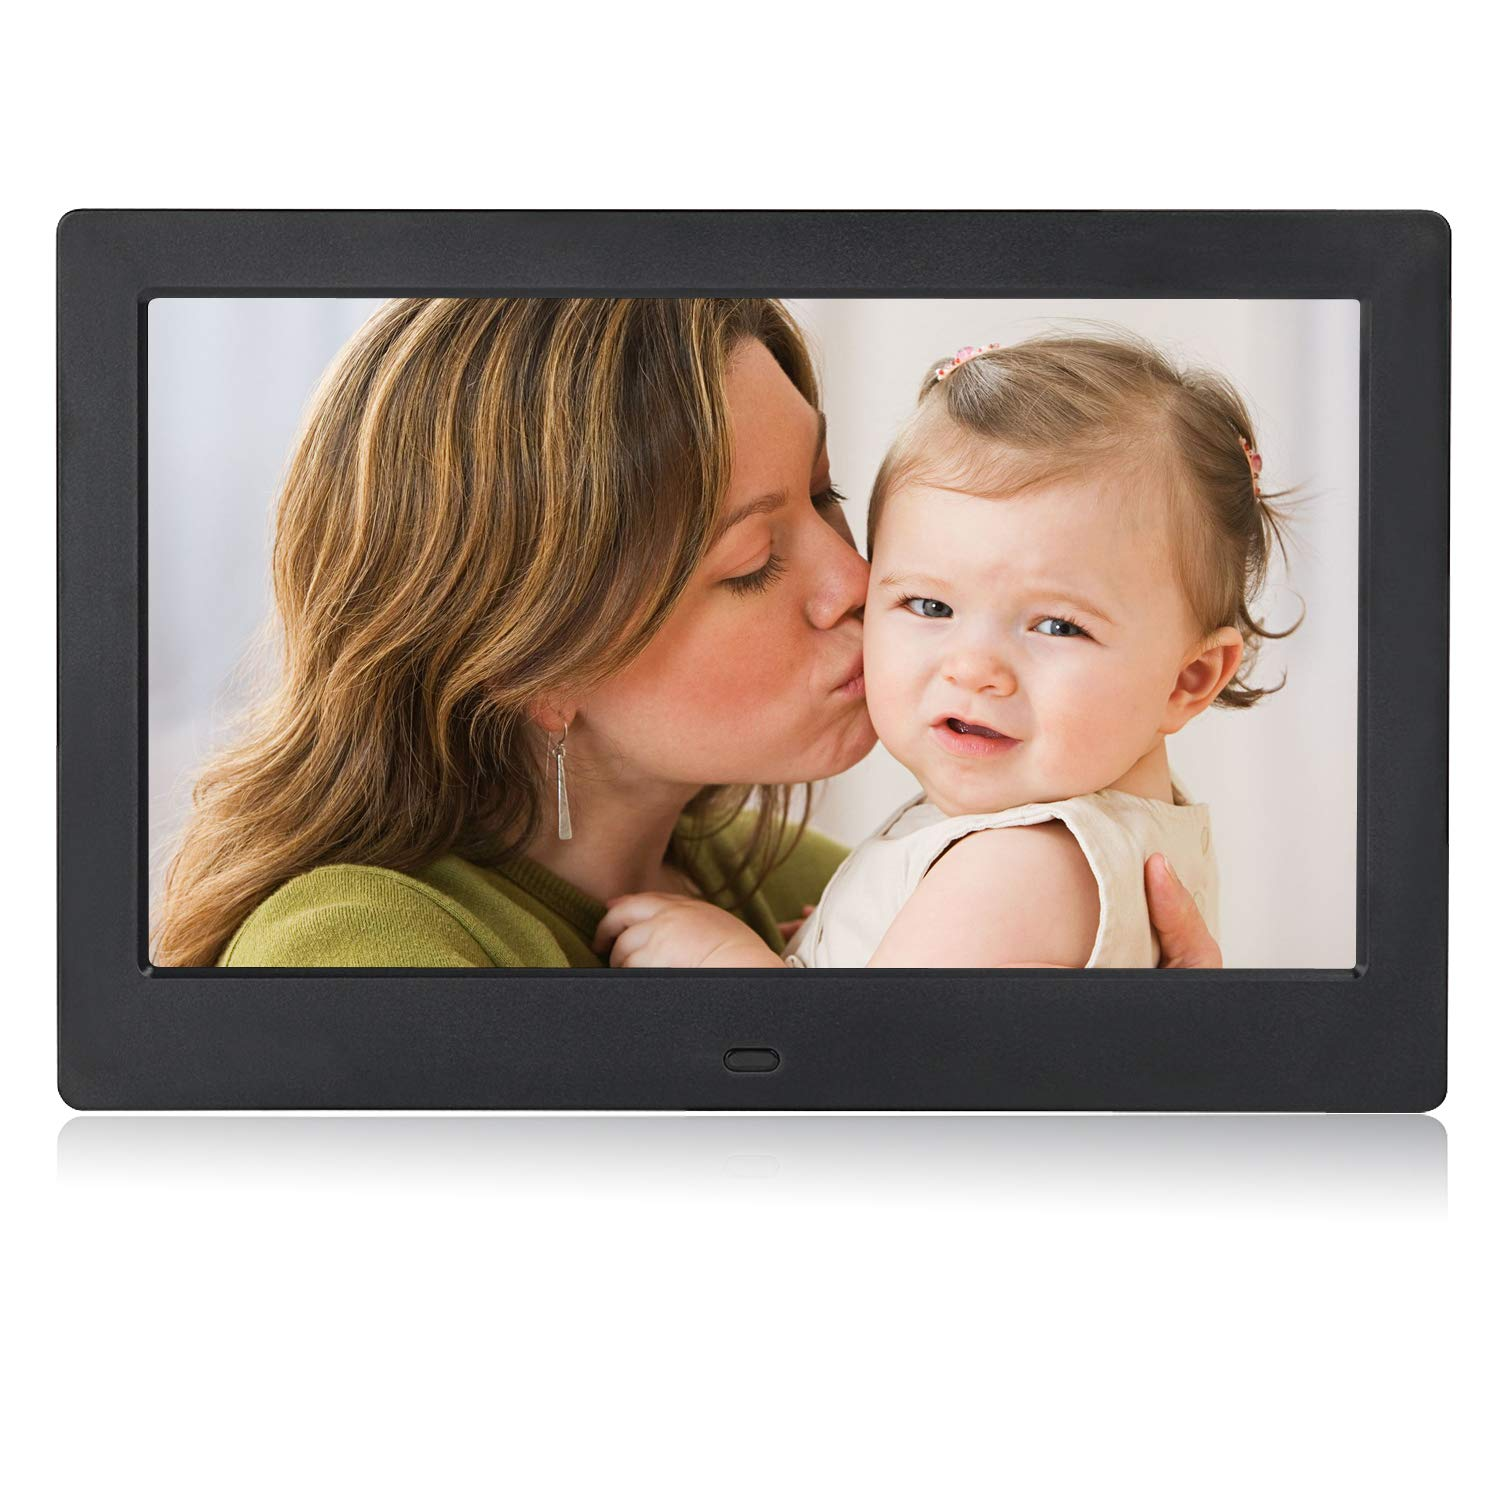 Digital Picture Photo Frame IPS Widescreen Electronic Picture Frame High Definition(1080P) with LCD Display 1024x768,No USB/SD Included,with Wireless Remote Control(Black)